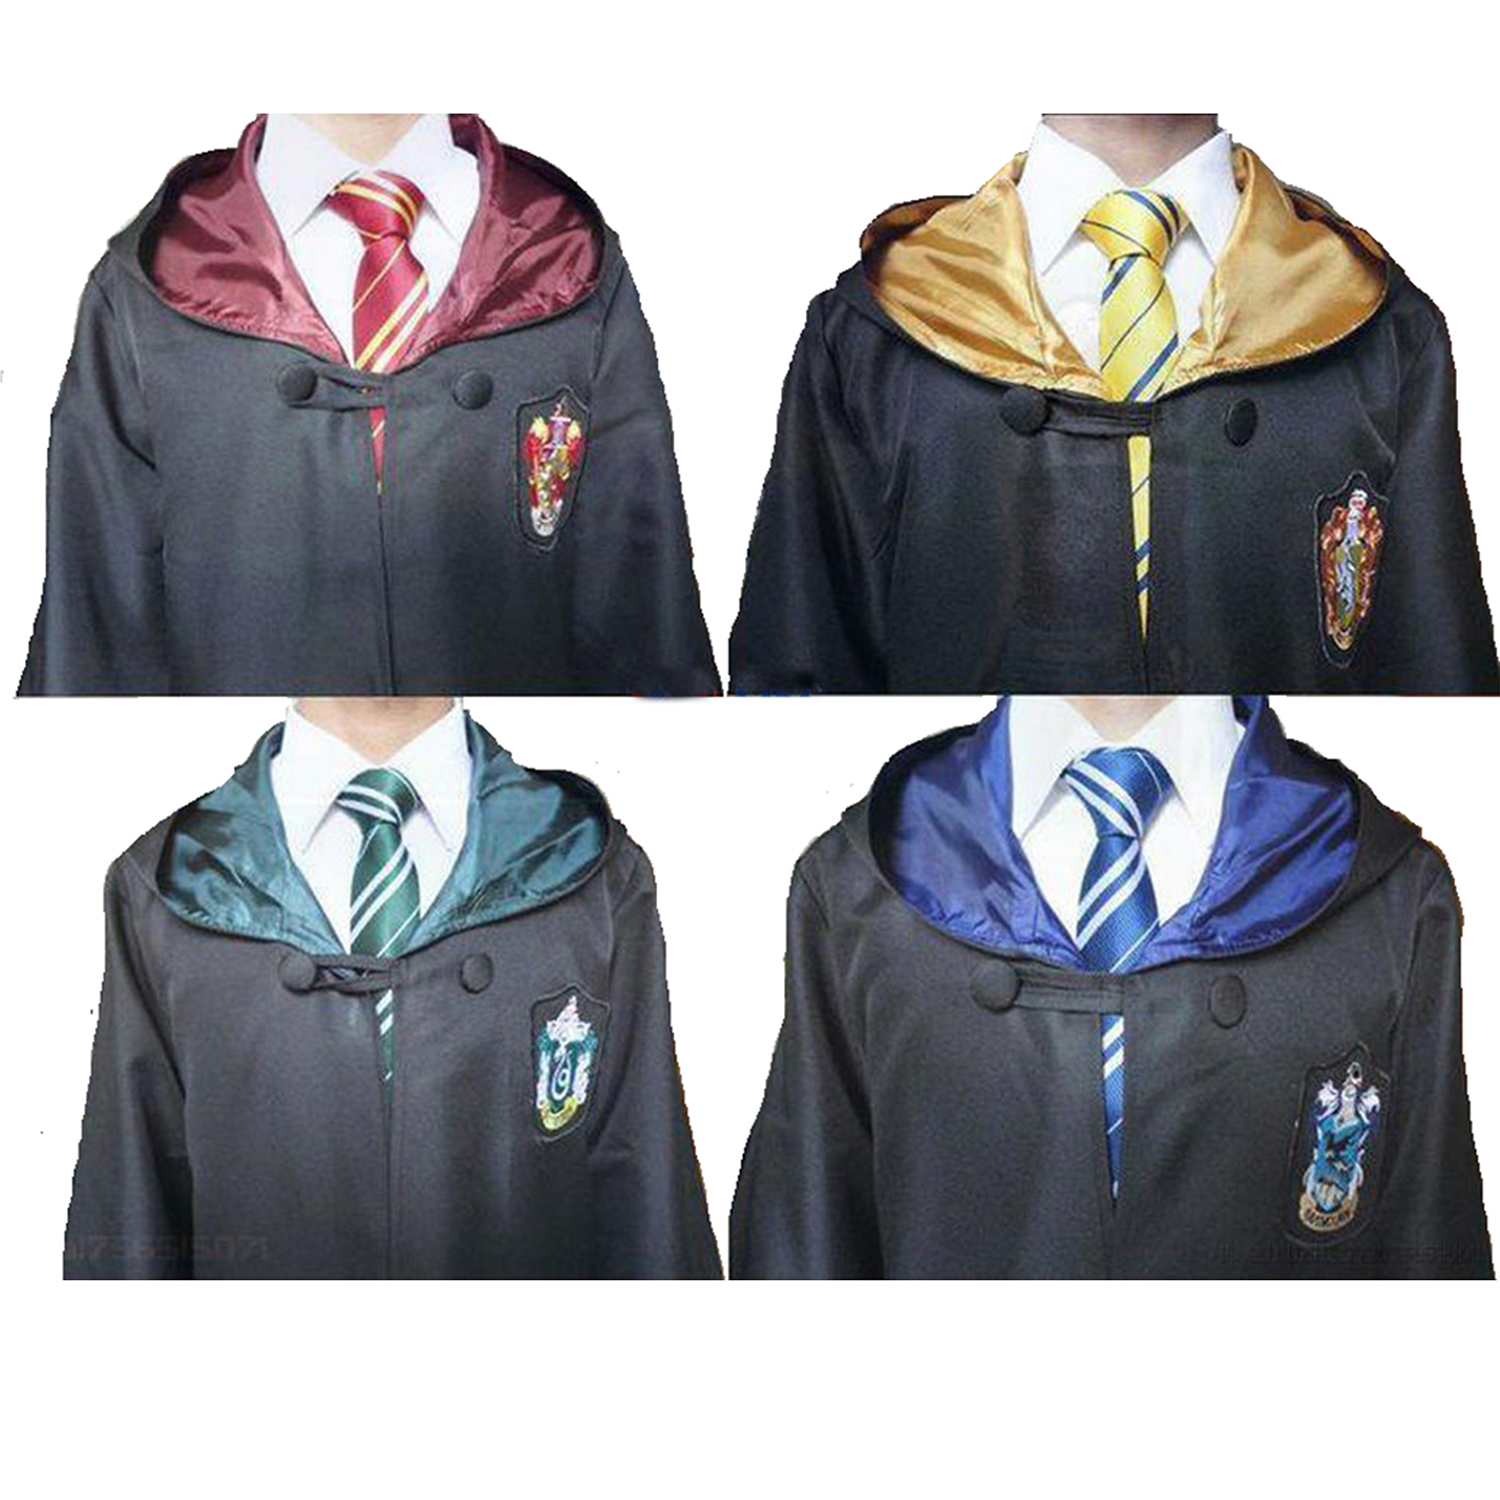 Gryffindor Cosplay Costume Potter Robe Scarf Ravenclaw Hufflepuff Slytherin Cloak With Tie Potter Costume